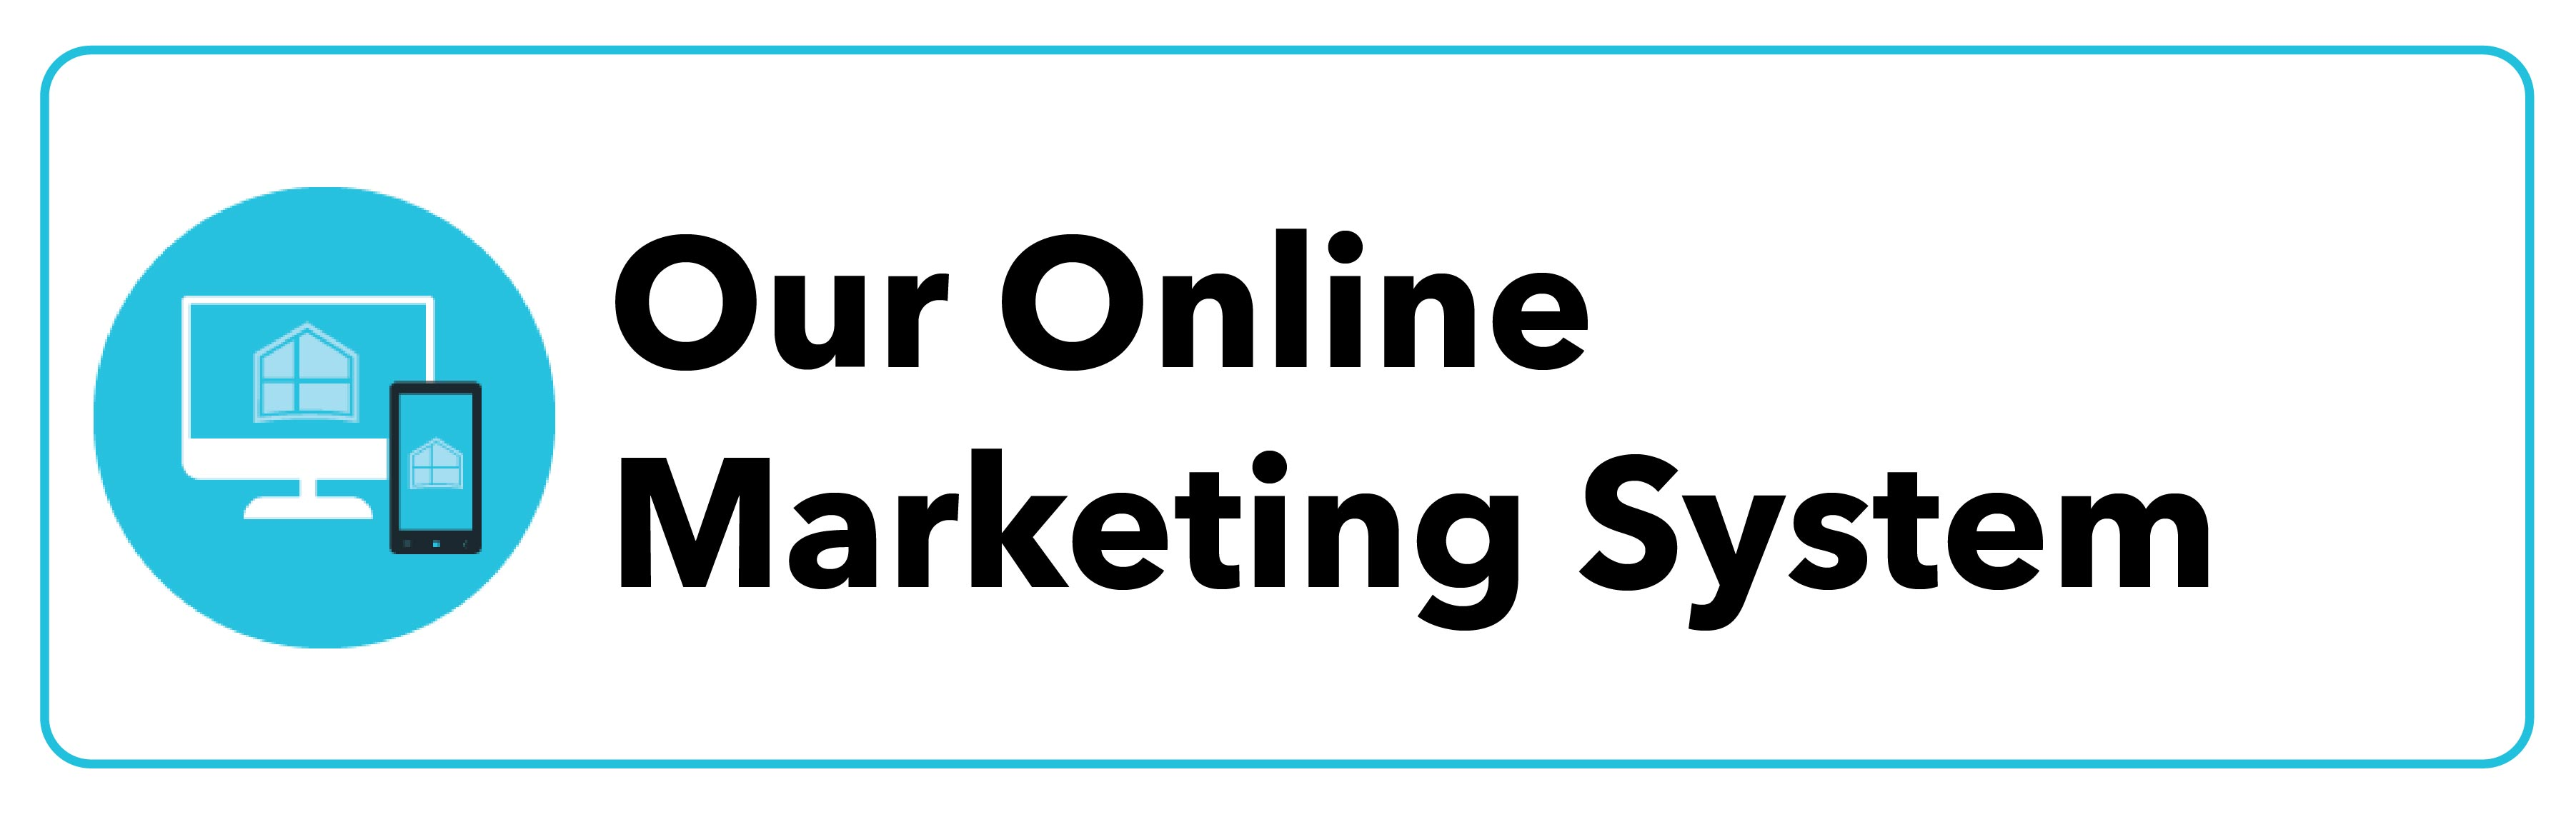 Our Online Marketing System